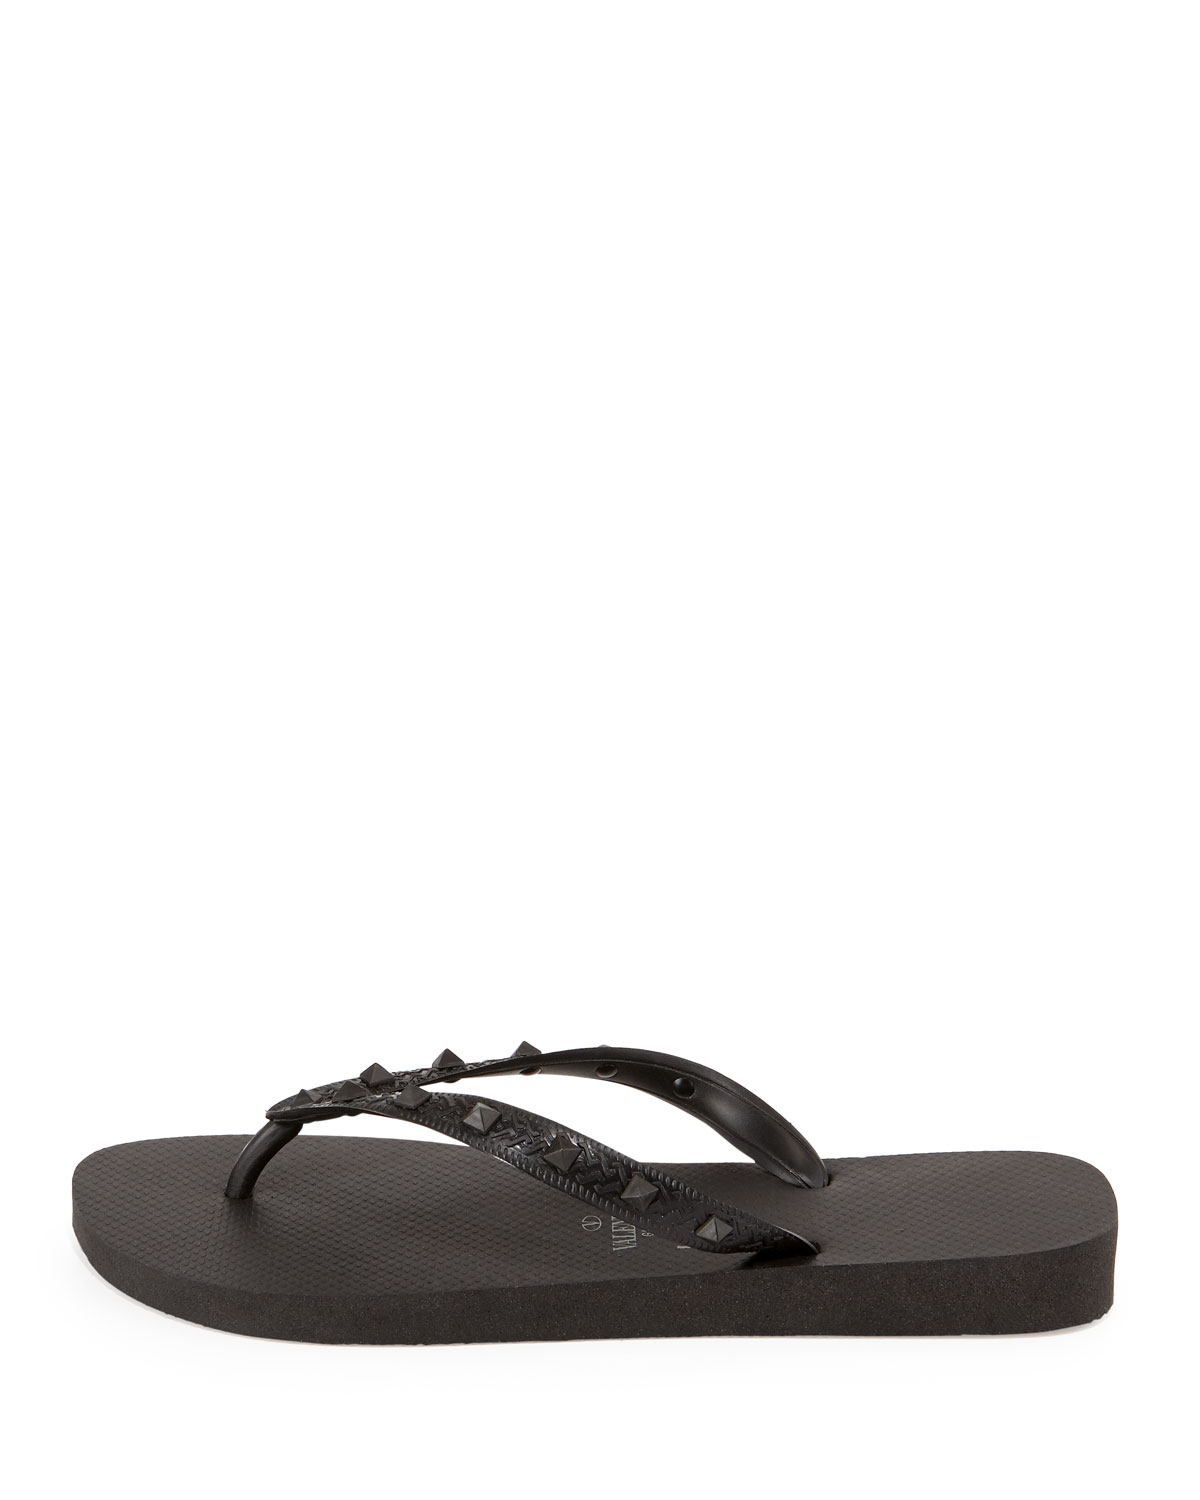 valentino by havaianas rockstud flip flop in black lyst. Black Bedroom Furniture Sets. Home Design Ideas